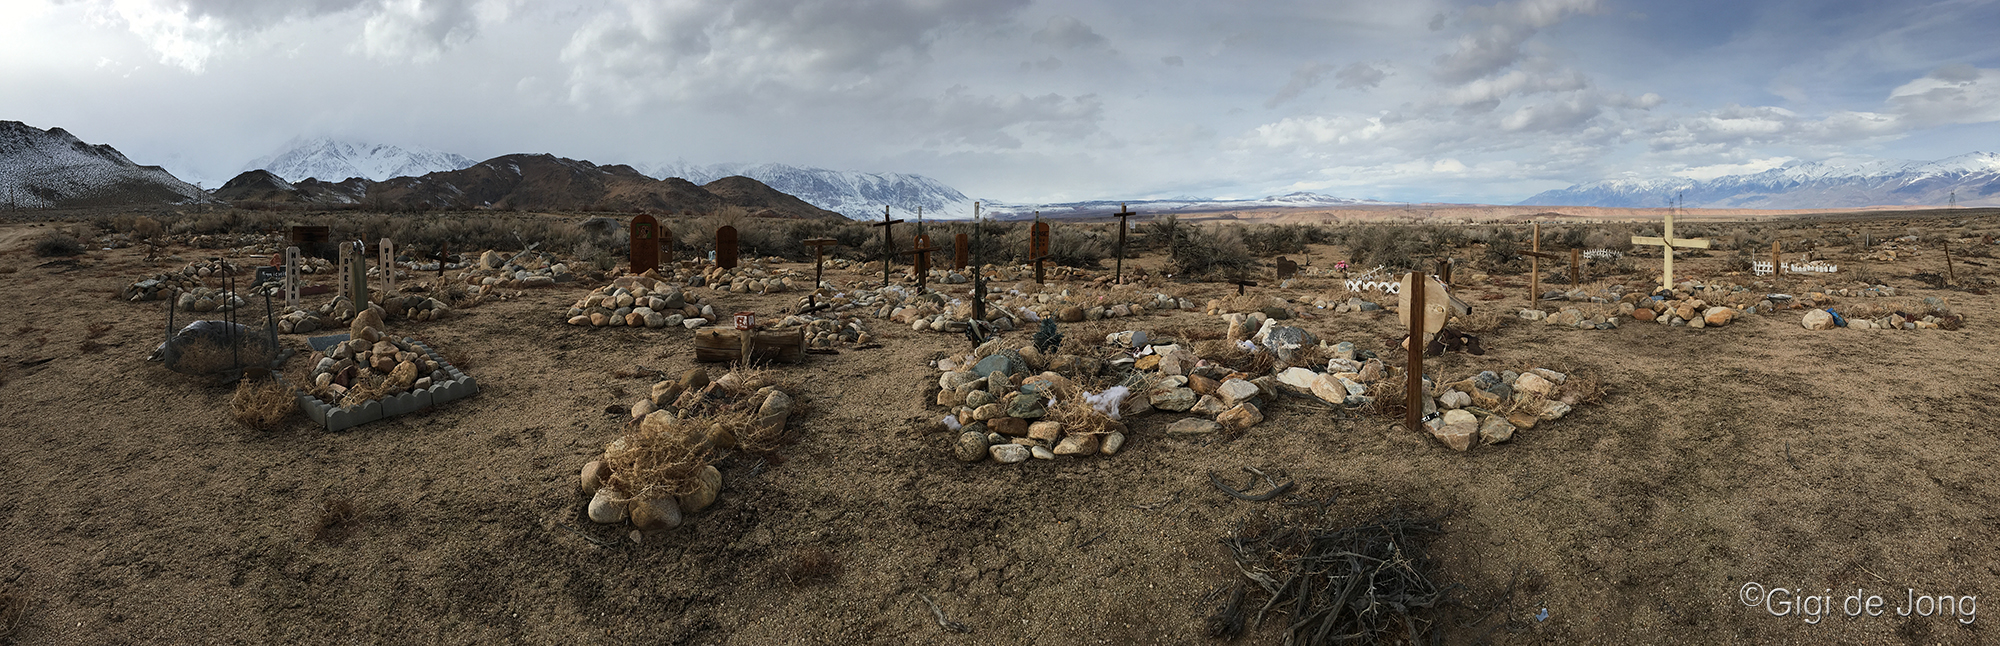 Grave markers in a pet cemetery with storm clouds on snowy mountains in background